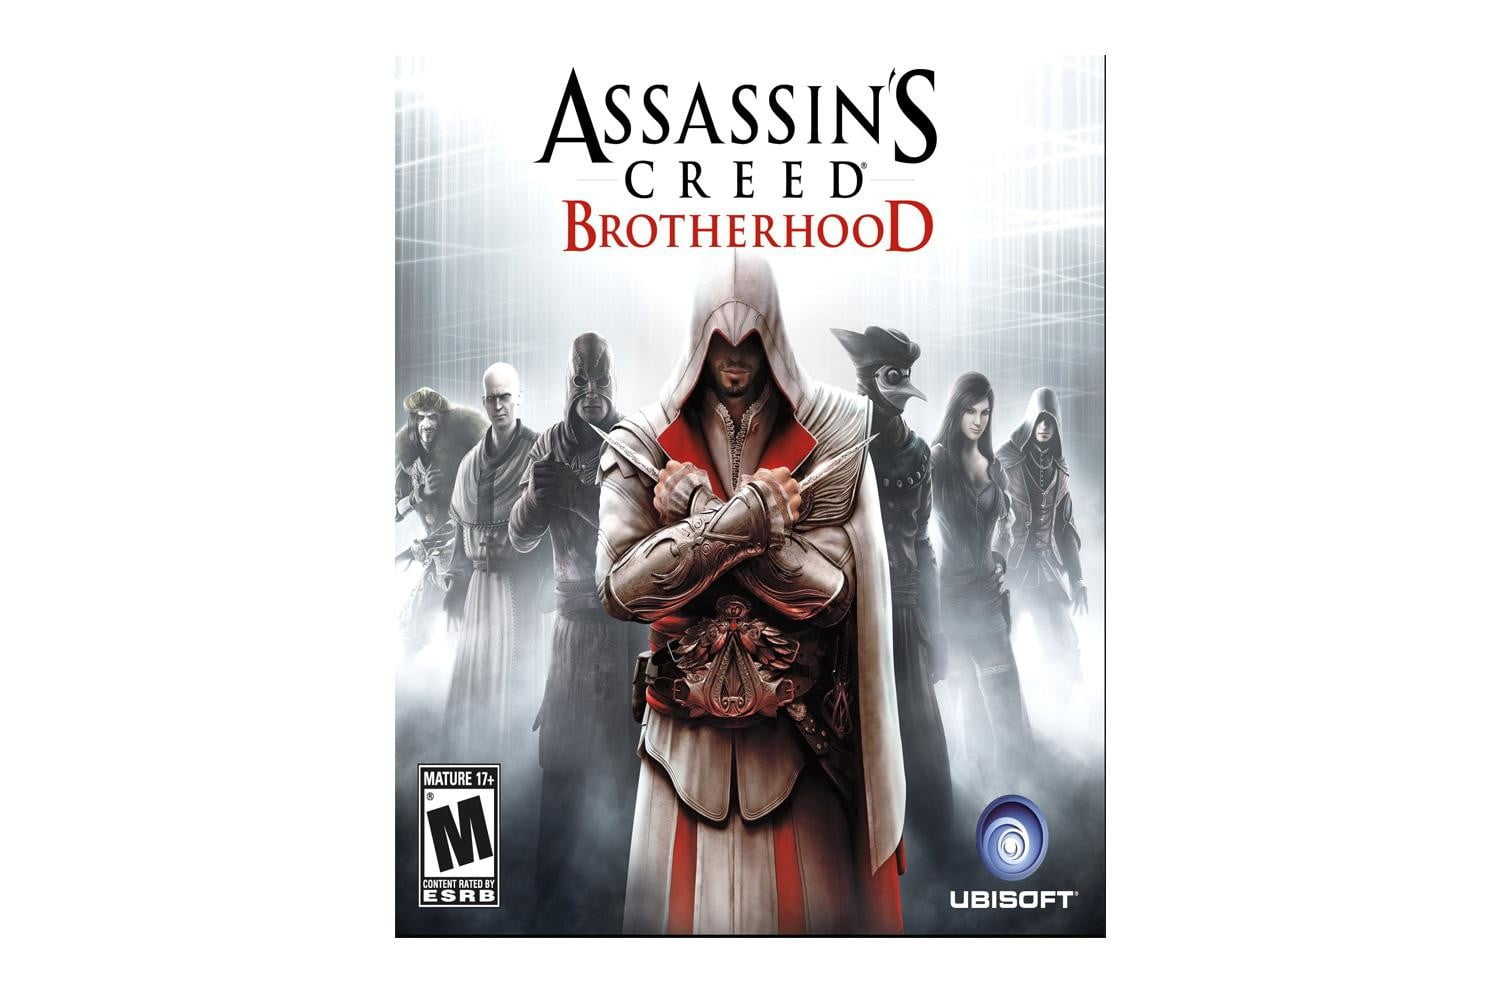 Assassin's-Creed-Brotherhood-cover-art